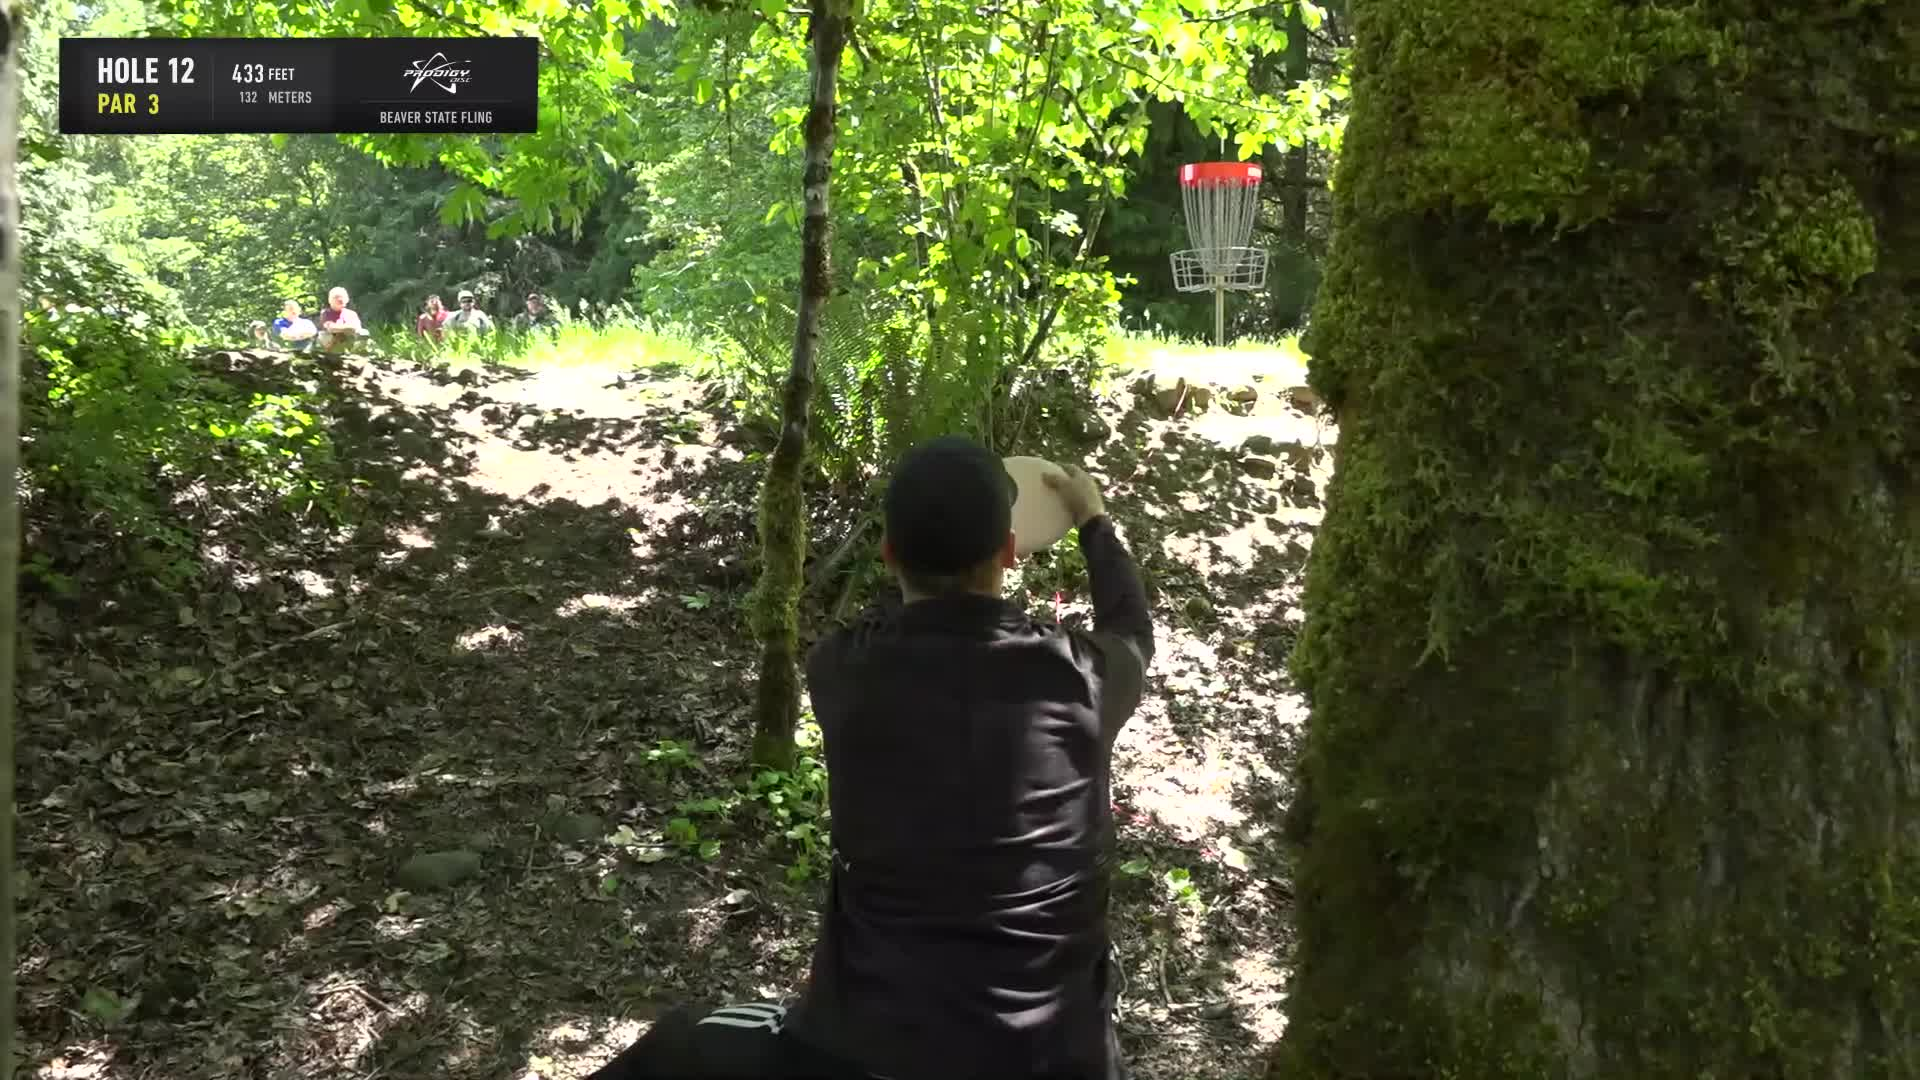 ace, bsf, dela, delaveaga, dgpt, dgwt, disc, disc golf, frolf, hole in one, masters cup, mcbeast, milo, nate sexton, nt, paul mcbeth, pdga, simon lizotte, tournament, worlds, 2019 Beaver State Fling - Round 3 Part 2 - Seppo Paju hole 12 putt GIFs